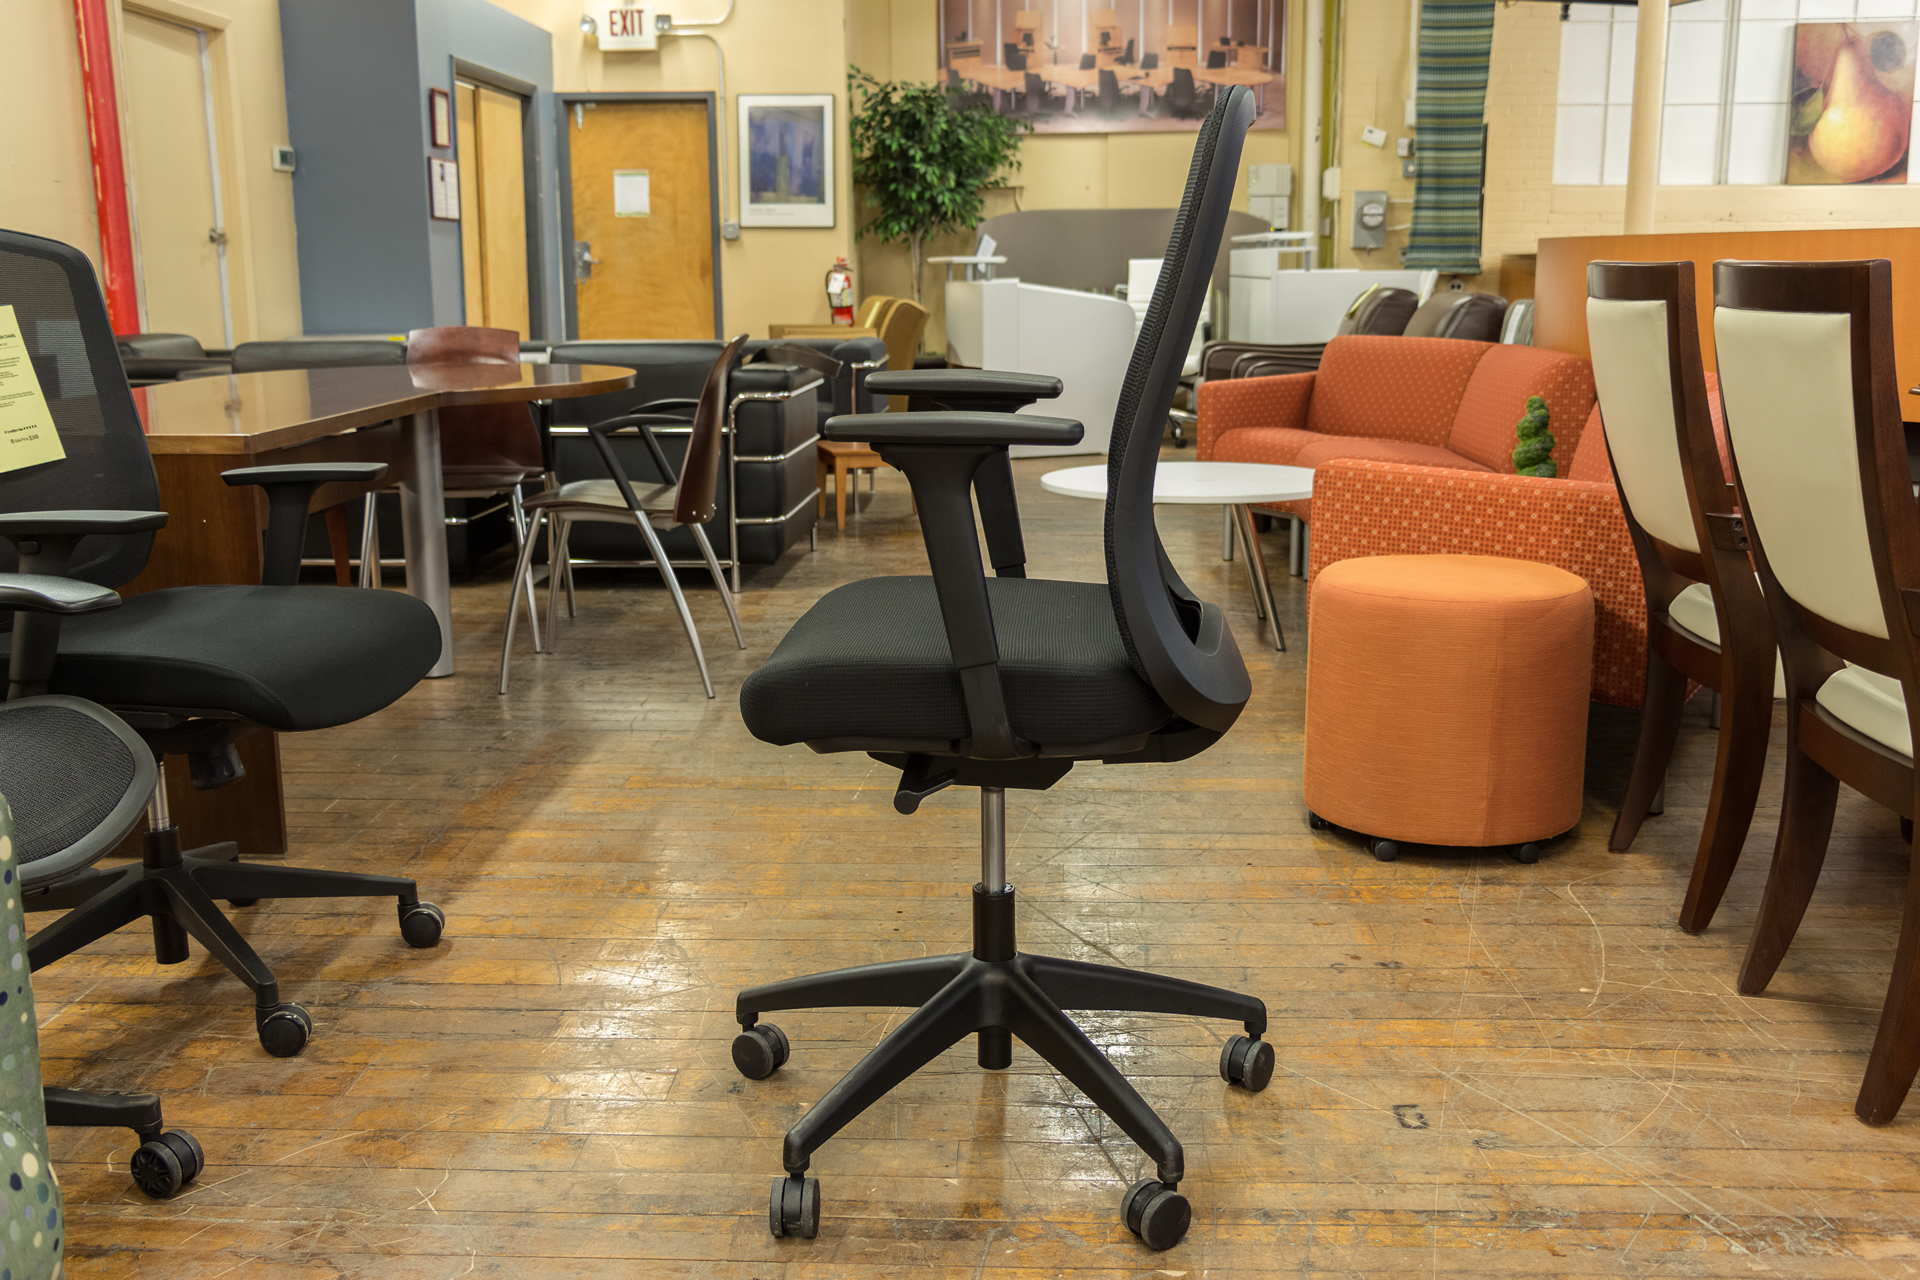 peartreeofficefurniture_peartreeofficefurniture_peartreeofficefurniture_ais-bolton-mesh-back-task-chairs-3.jpg